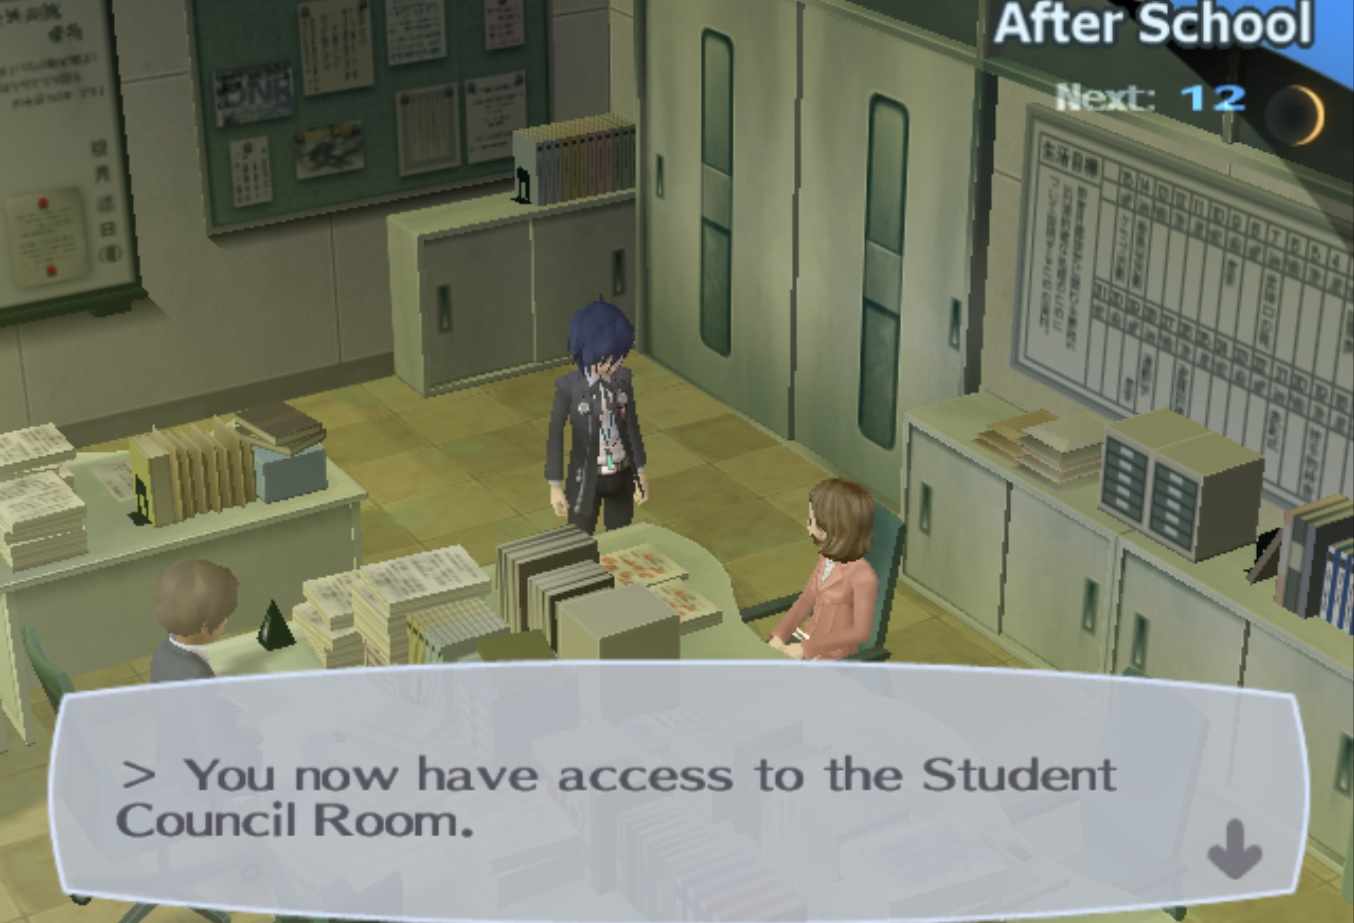 Access to Student Council Room